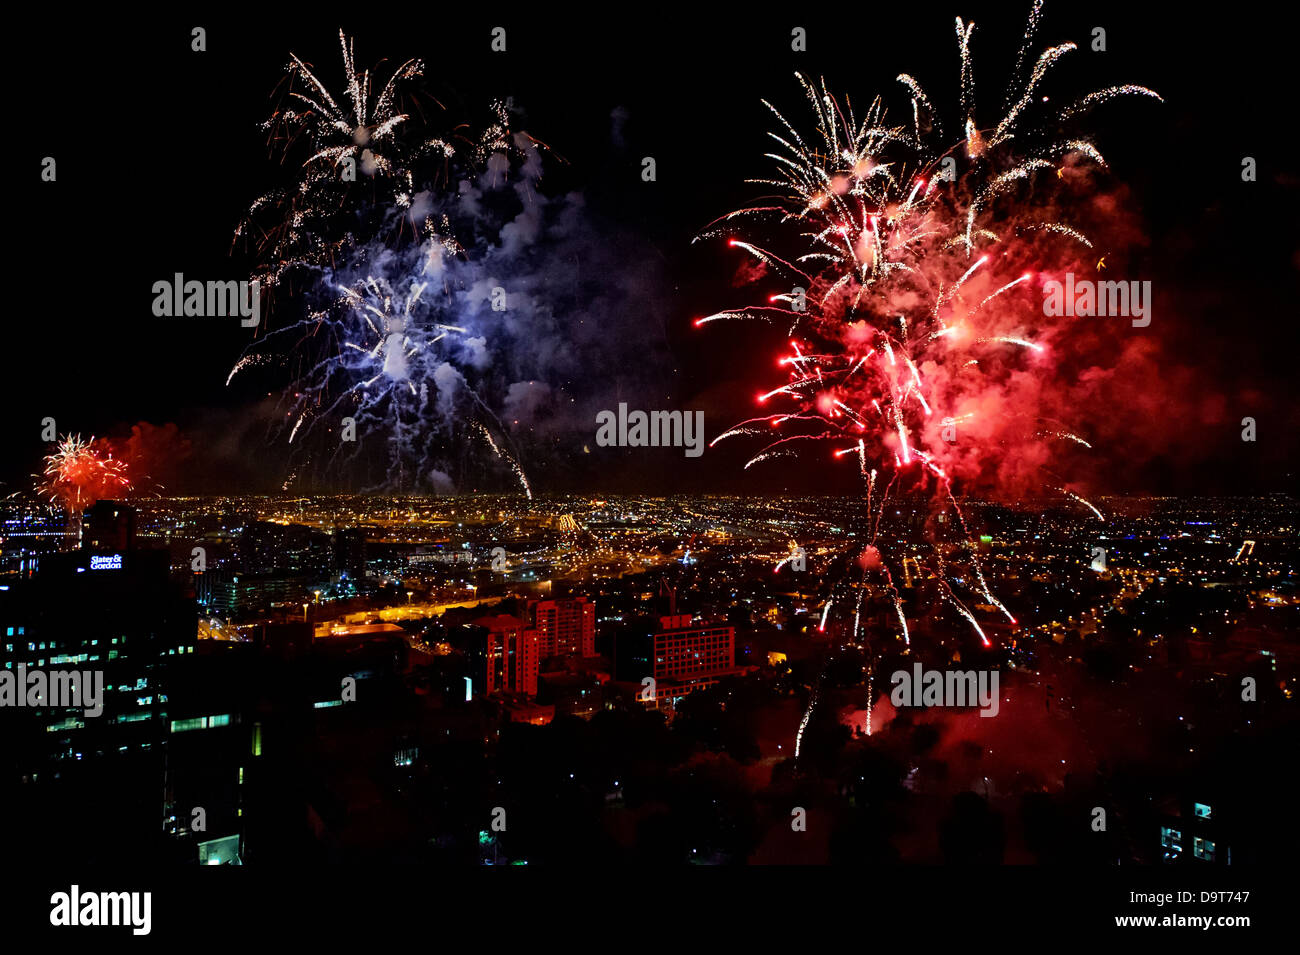 Spectacular fireworks photographed from atop a skyscraper light up the night sky over Melbourne Australia. - Stock Image